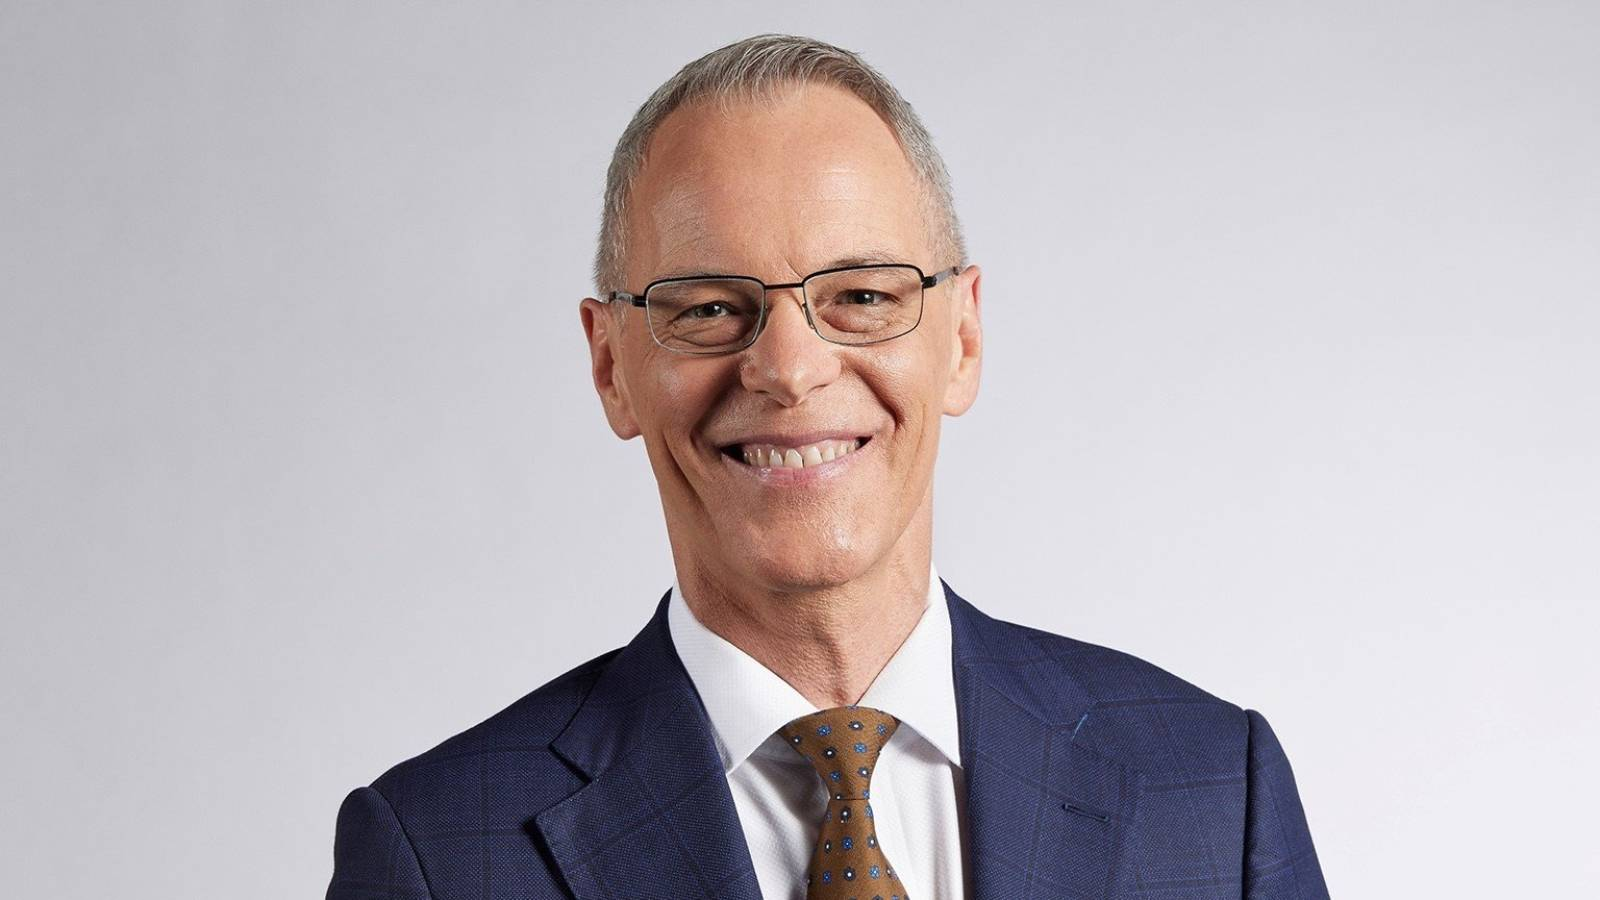 Simon Dallow: 'This is all about perspective'